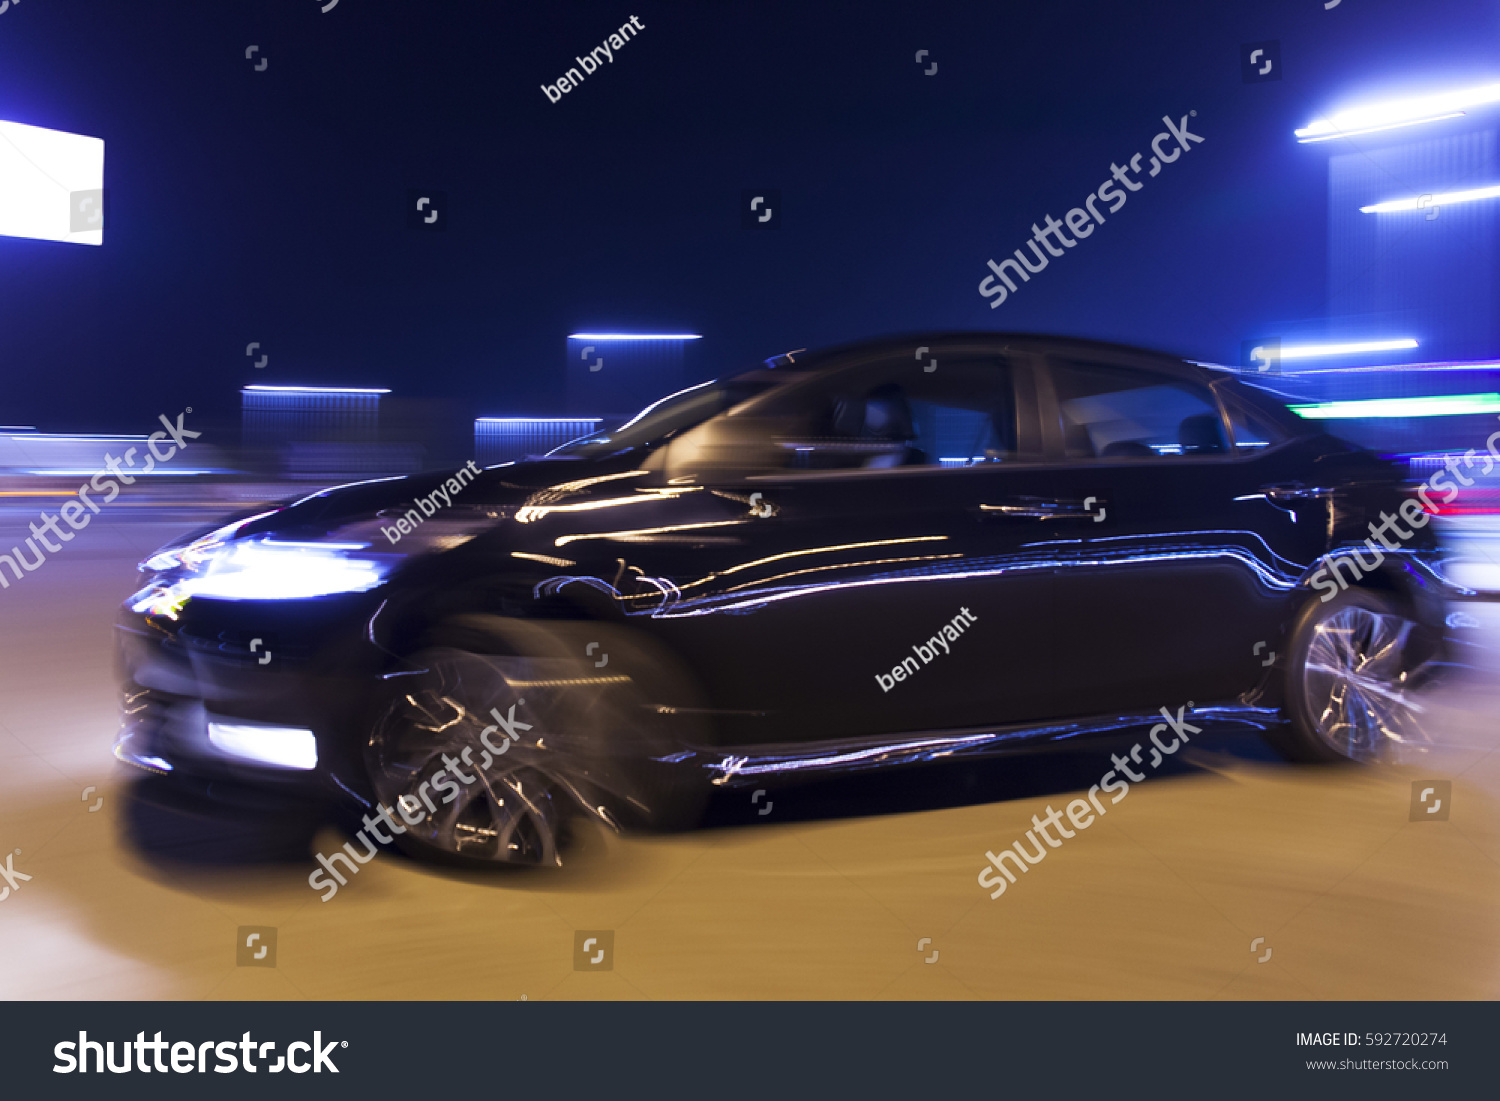 Blurred Image Motion Car Night Stock Photo 592720274 Shutterstock